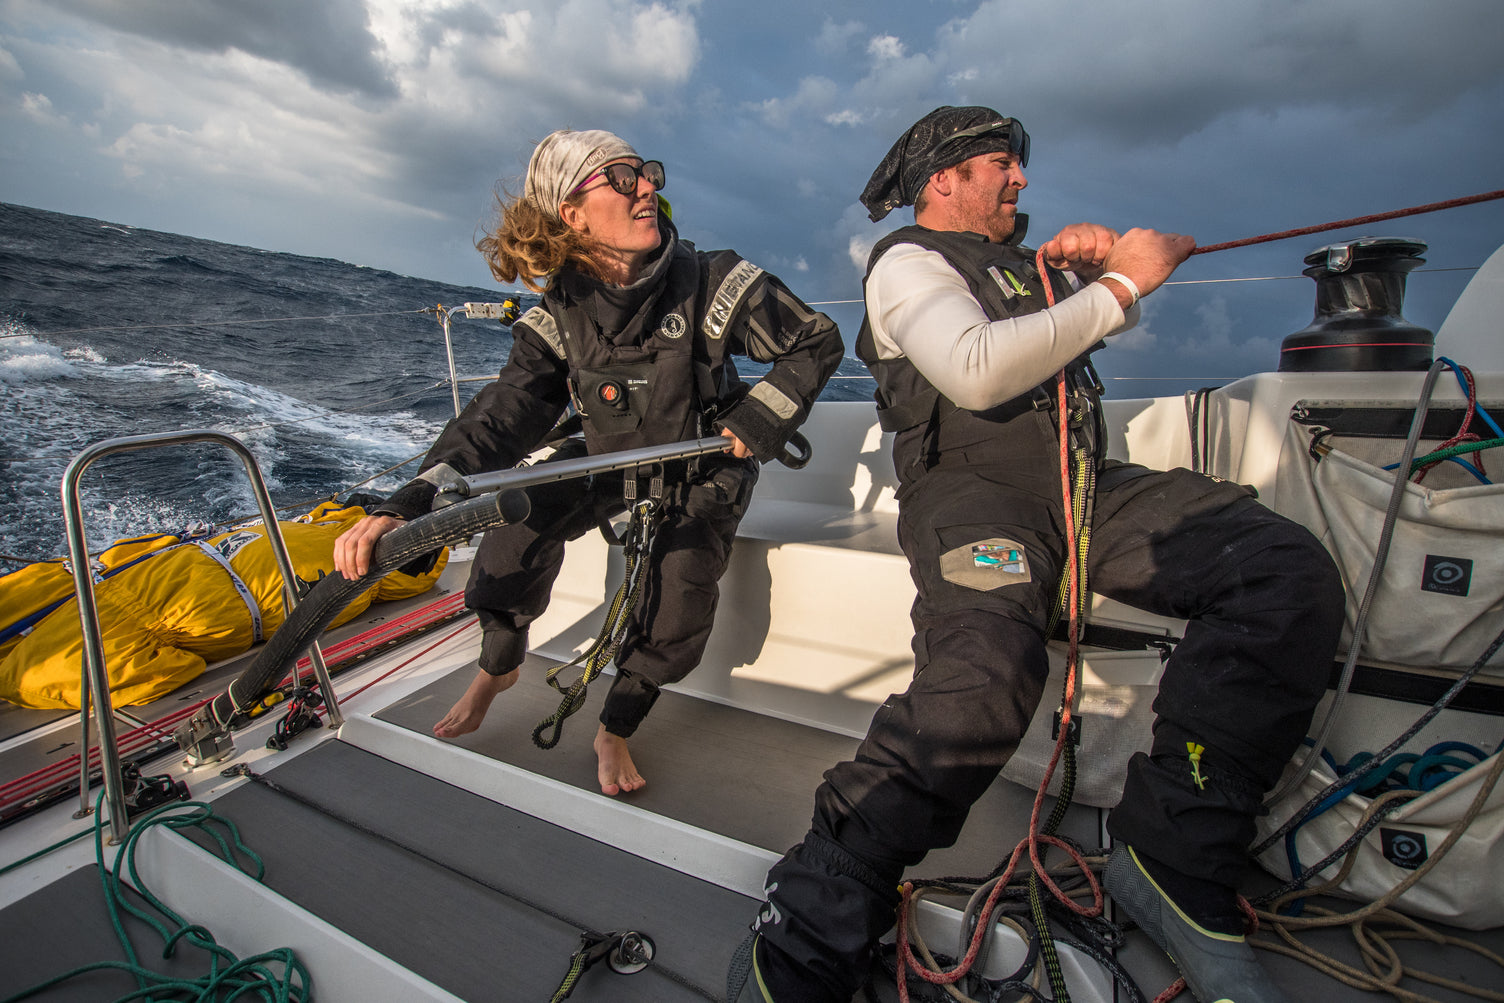 man and women adjust the sails of their racing sail boat